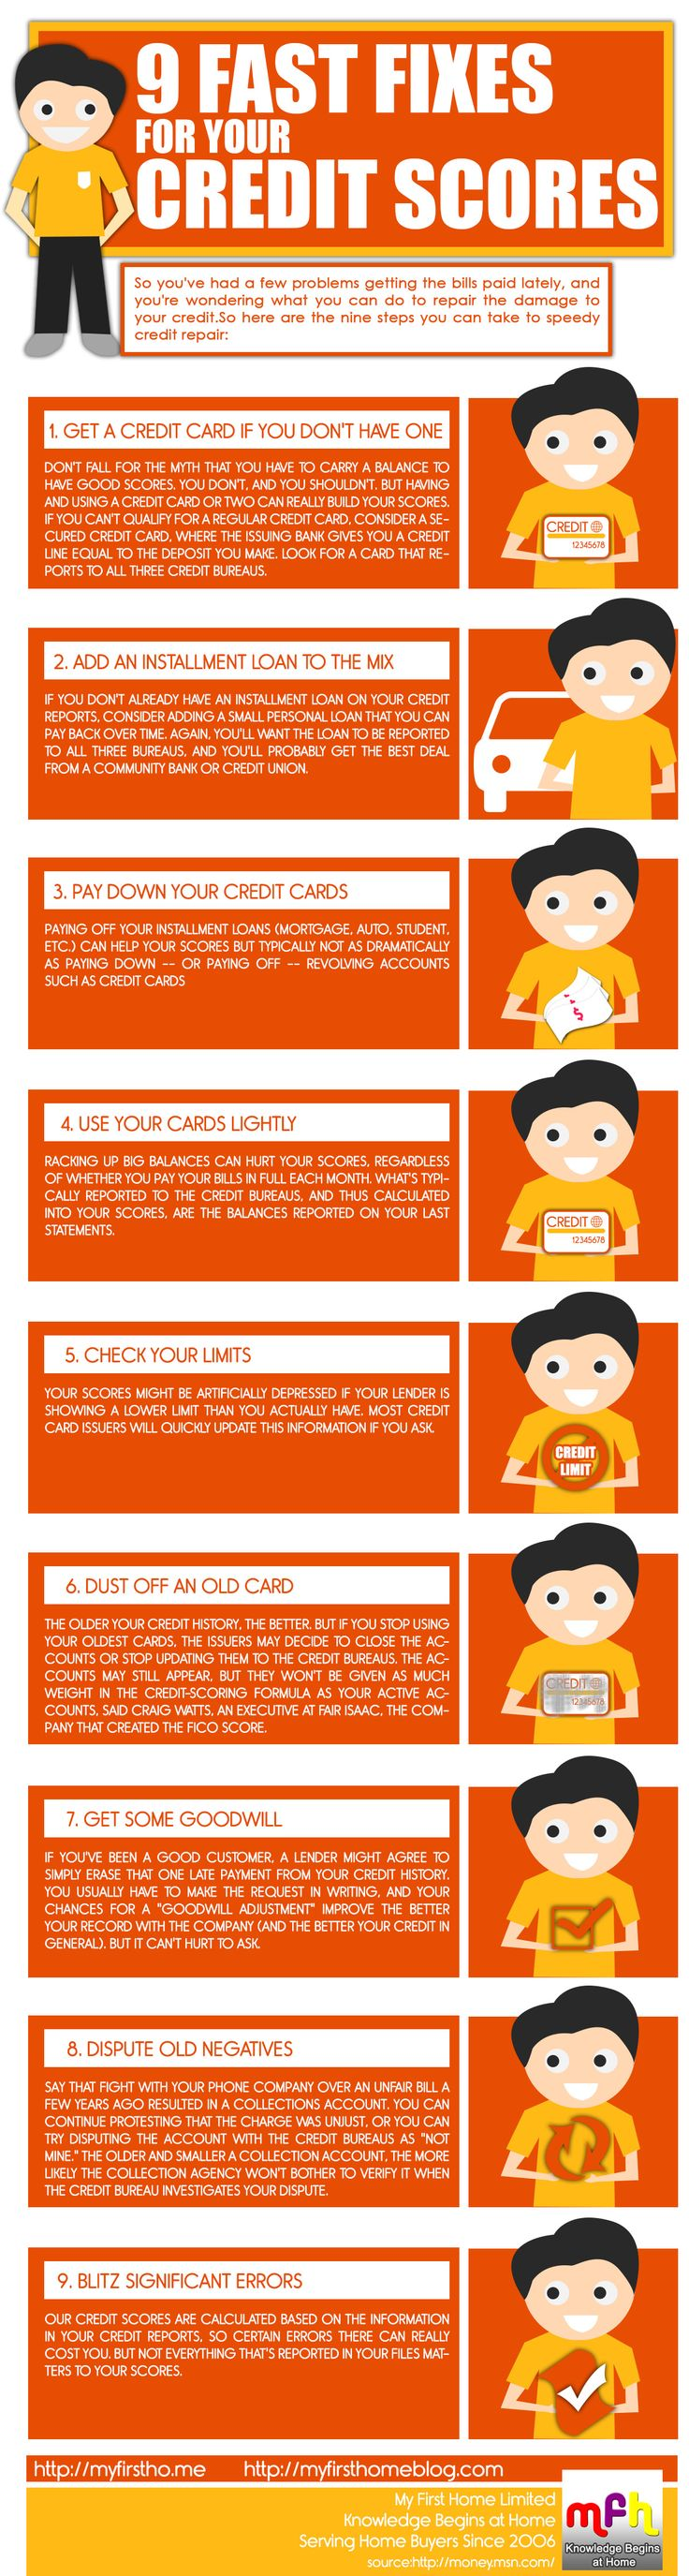 25 unique fix your credit ideas on pinterest improve your 25 unique fix your credit ideas on pinterest improve your credit score fixing credit score and improve credit score ccuart Gallery